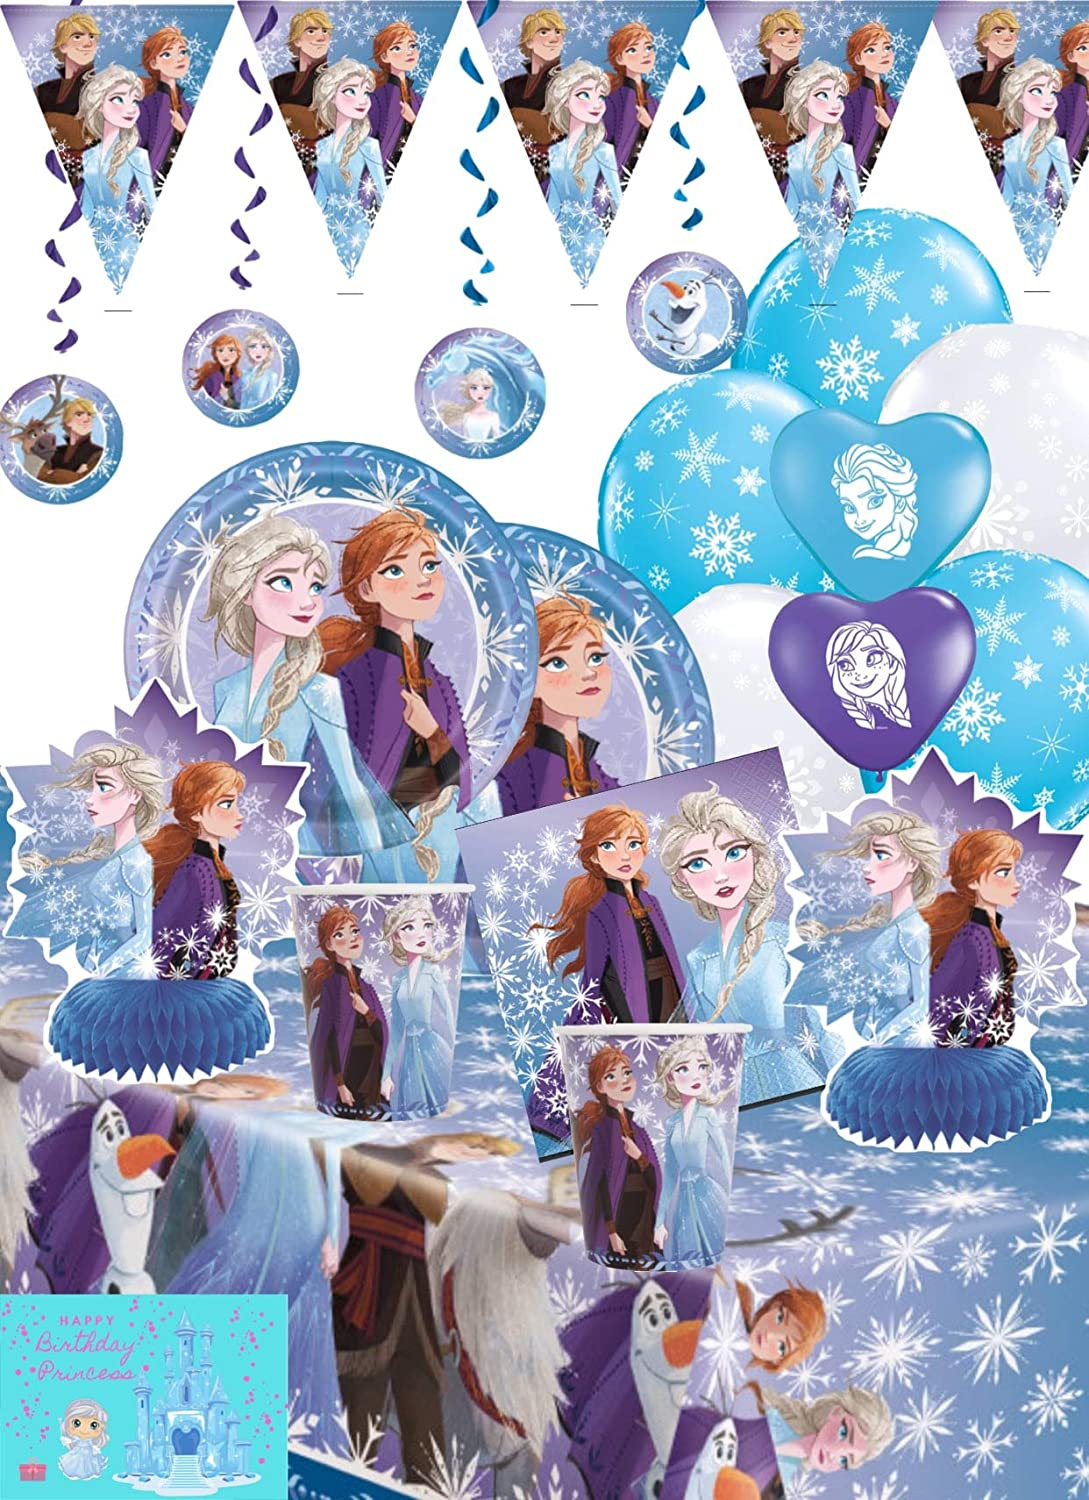 Frozen 2 Party Supplies and Decoration Kit - with Frozen Plates, Decor Kit, Banner, Balloons, Napkins, Table Cover, Cups and Birthday Card by JPMD (Serves 16)